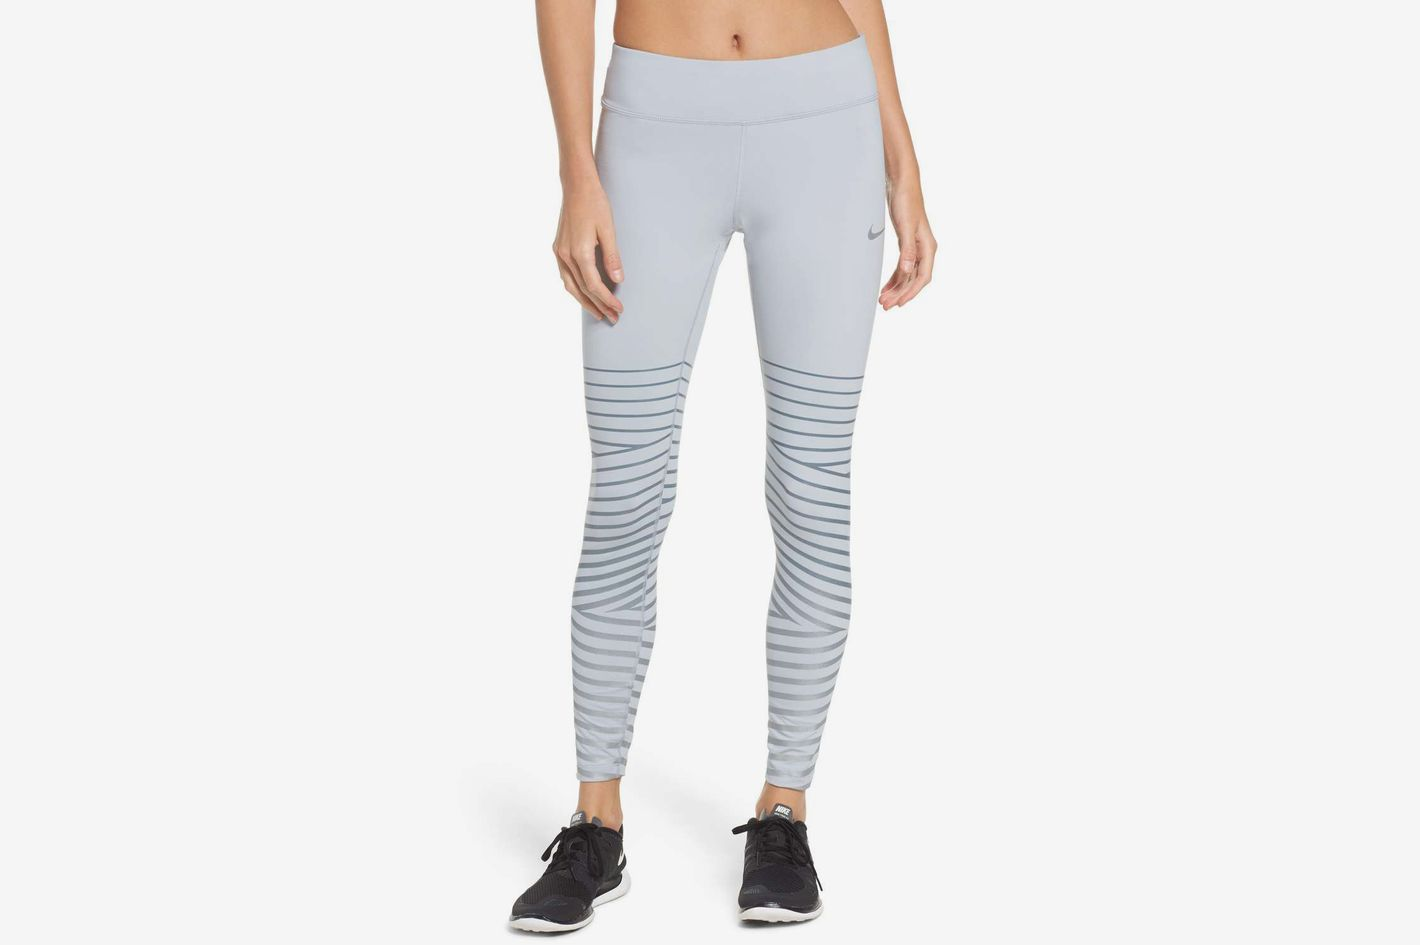 36df9f1f0c255 The 13 Best Workout Leggings for Running and Yoga 2018